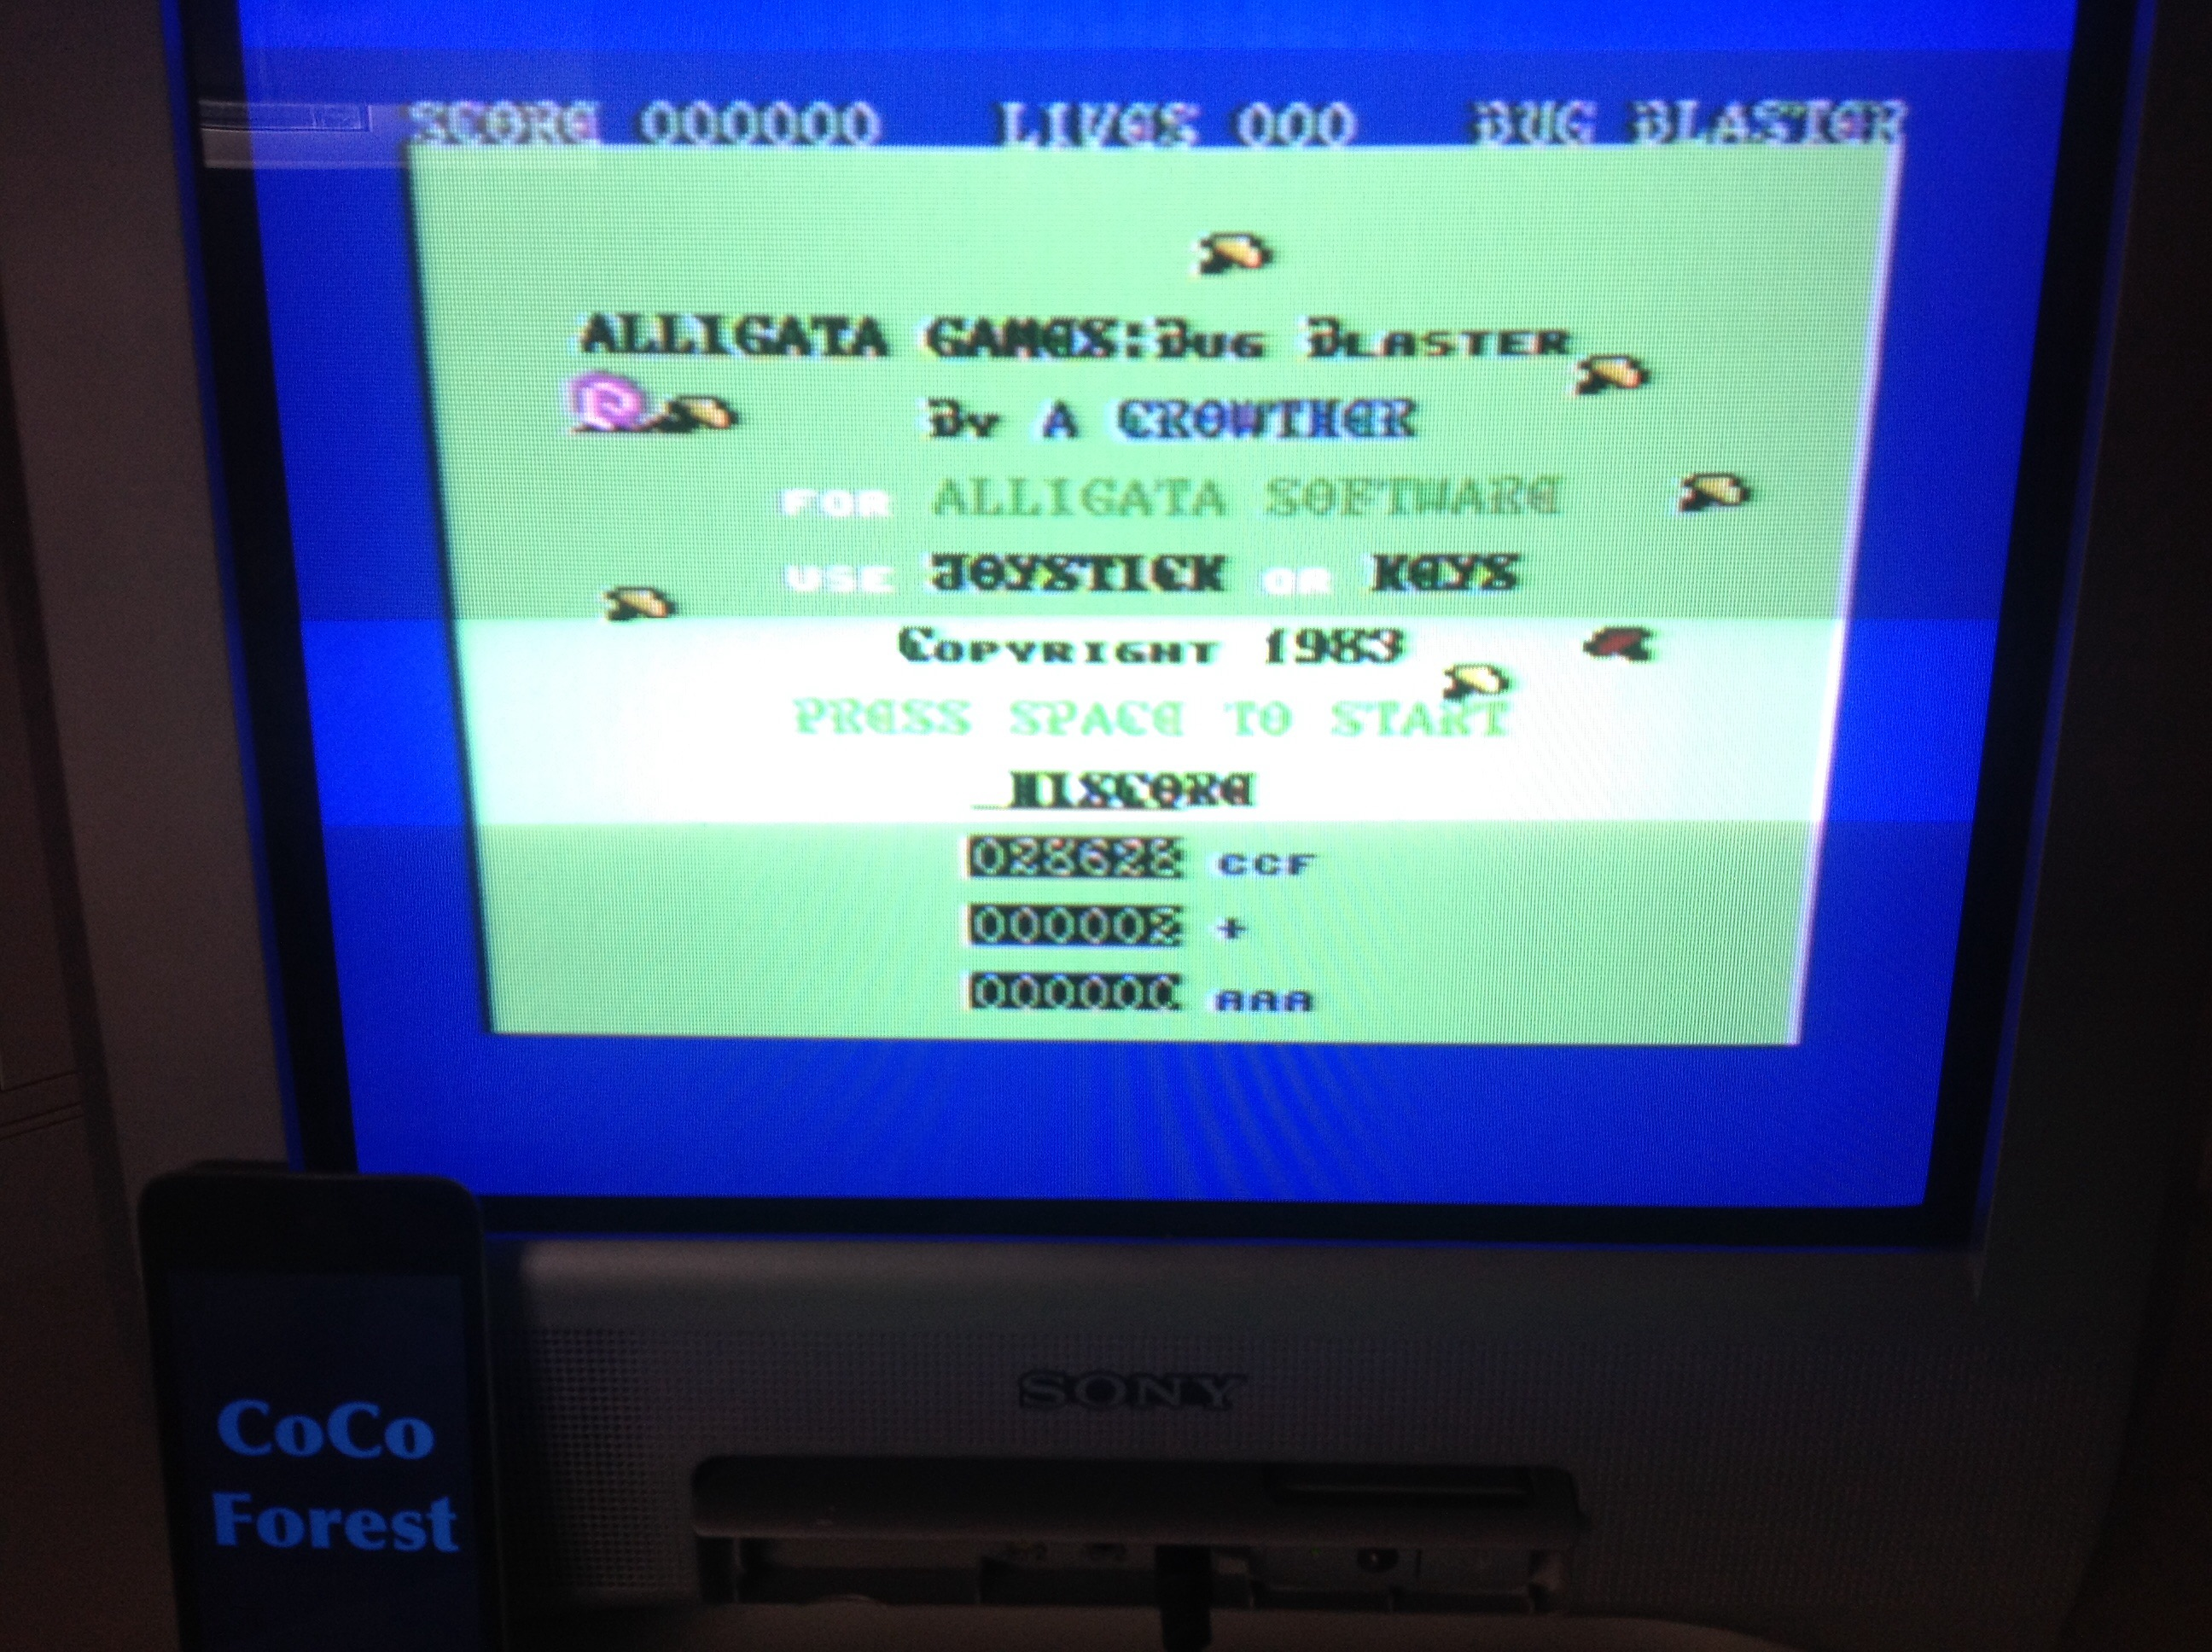 CoCoForest: Bug Blaster (Commodore 64) 28,628 points on 2015-03-24 08:15:19